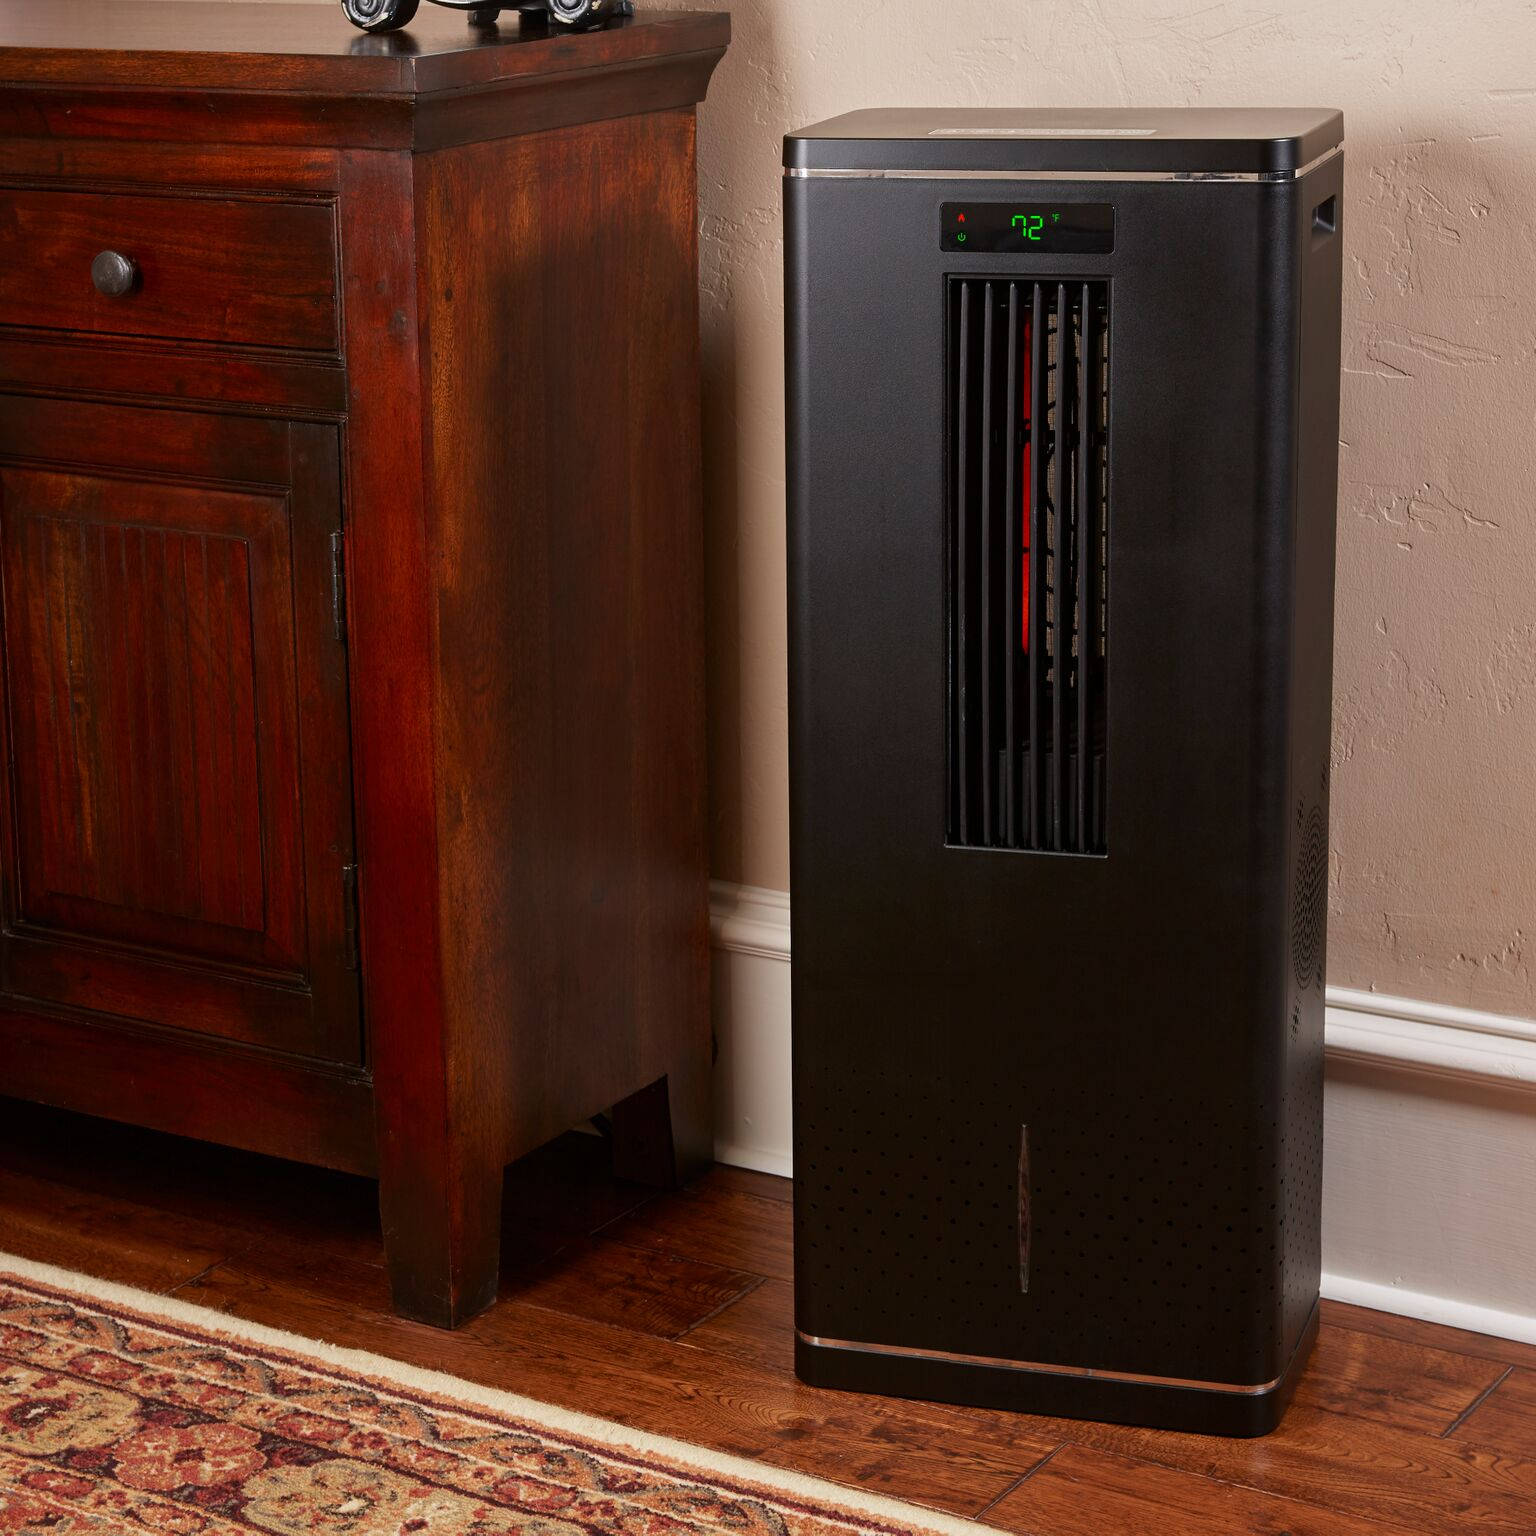 Lifesmart S4 All Season Cooling, Heating, Humidifier Tower by SCS